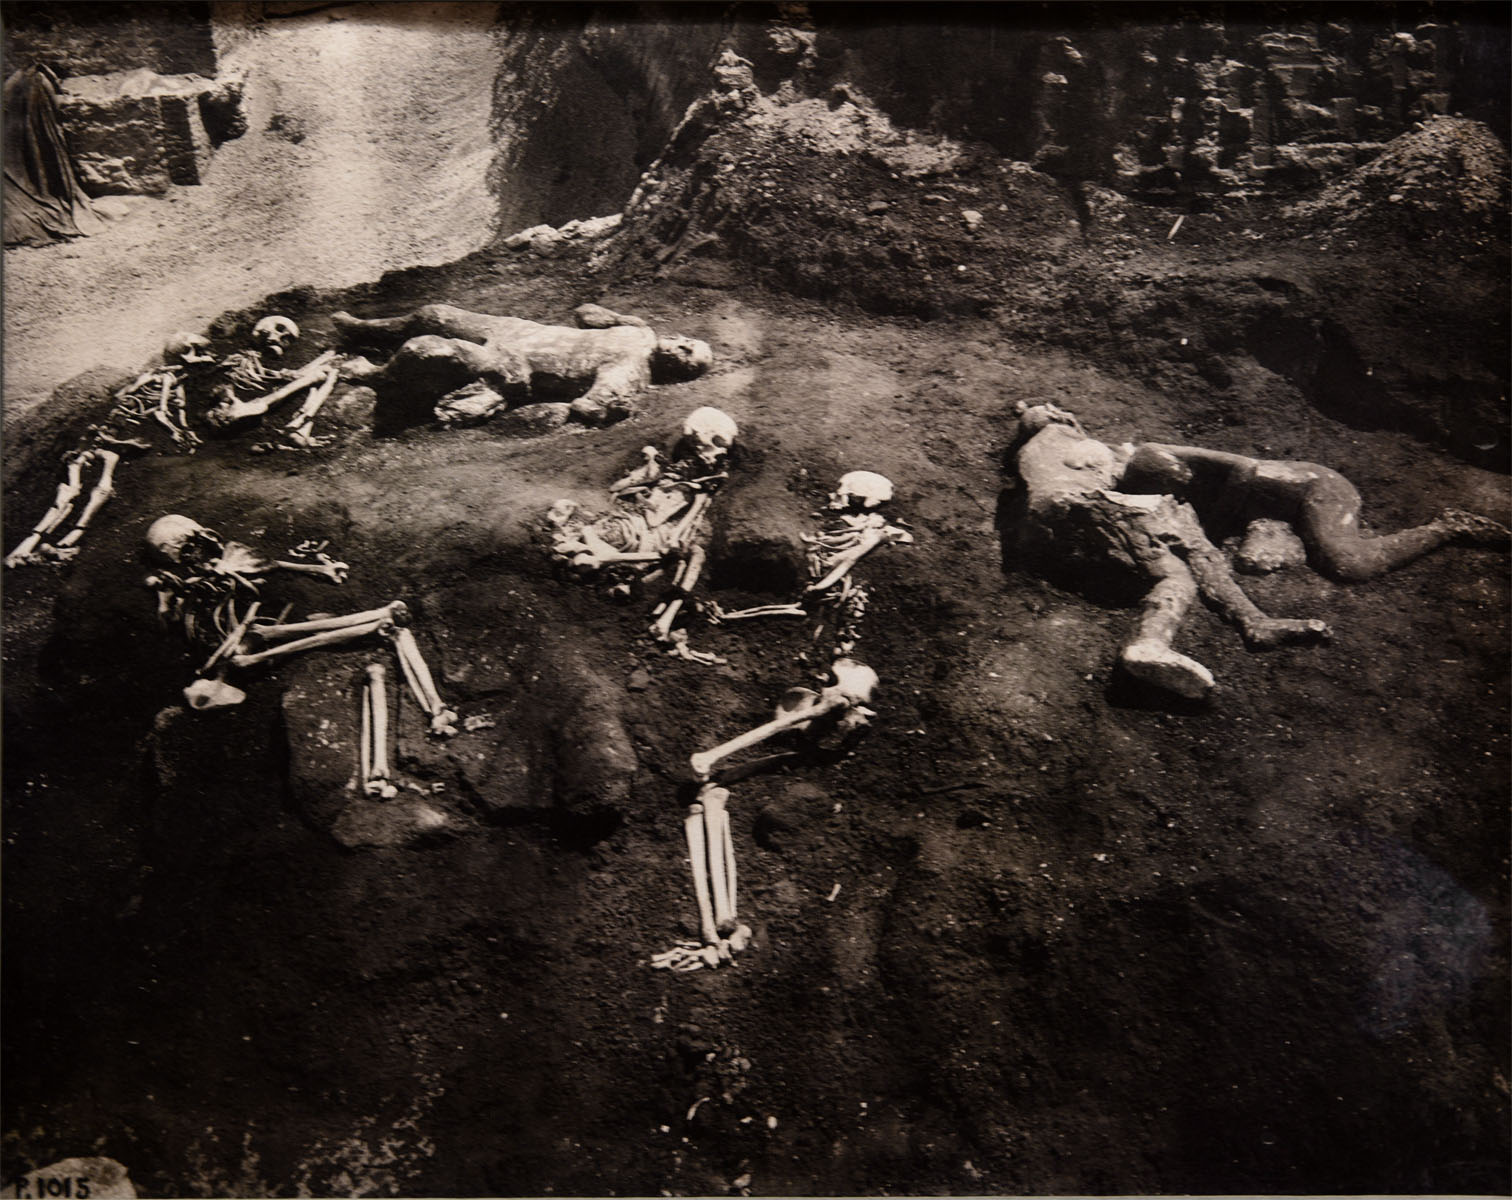 Skeletons and plaster casts of bodies of the victims of Vesuvius eruption of 79 CE. Photo made in 1915-16. Excavations of July 2-21, 1914. Pompeii